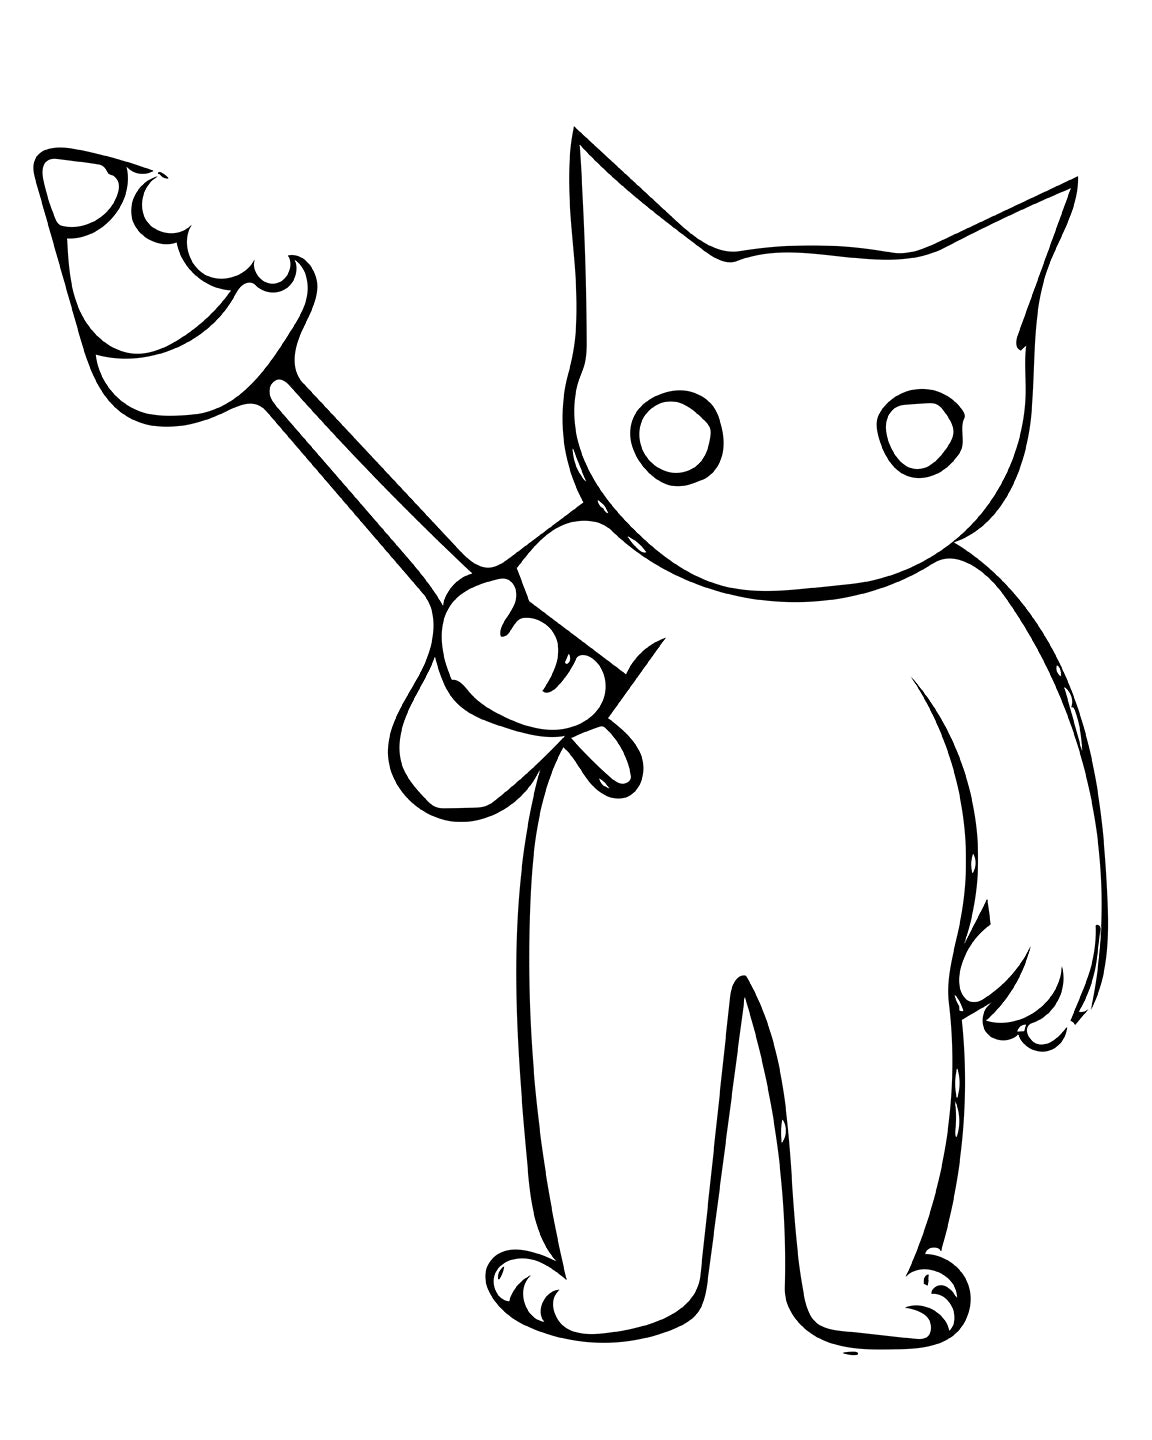 Free Spooky Halloween Cat Printable Coloring Page Up To 16 X 20